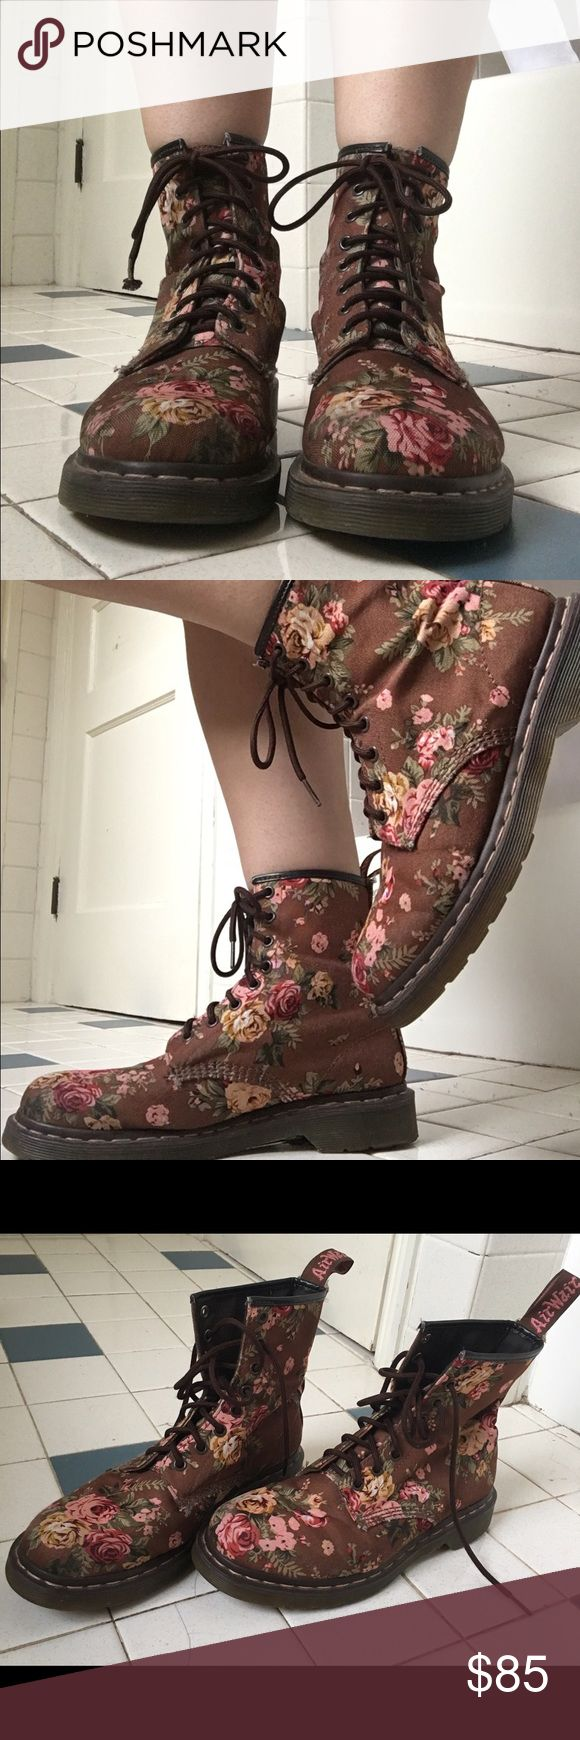 """""""BROWN 1460s VICTORIAN FLORAL"""" DOC MARTENS Gorgeous brown canvas Air-Wair Doc Martens with Victorian Era pink flower pattern. Well loved and worn but still pretty great condition! Slight wear on the canvas patterning, fraying and slight staining on the thread. WEAR/CONDITION: Well worn!                                                                                            MATERIAL: Canvas                                                                                          ✨ NO TRADES…"""